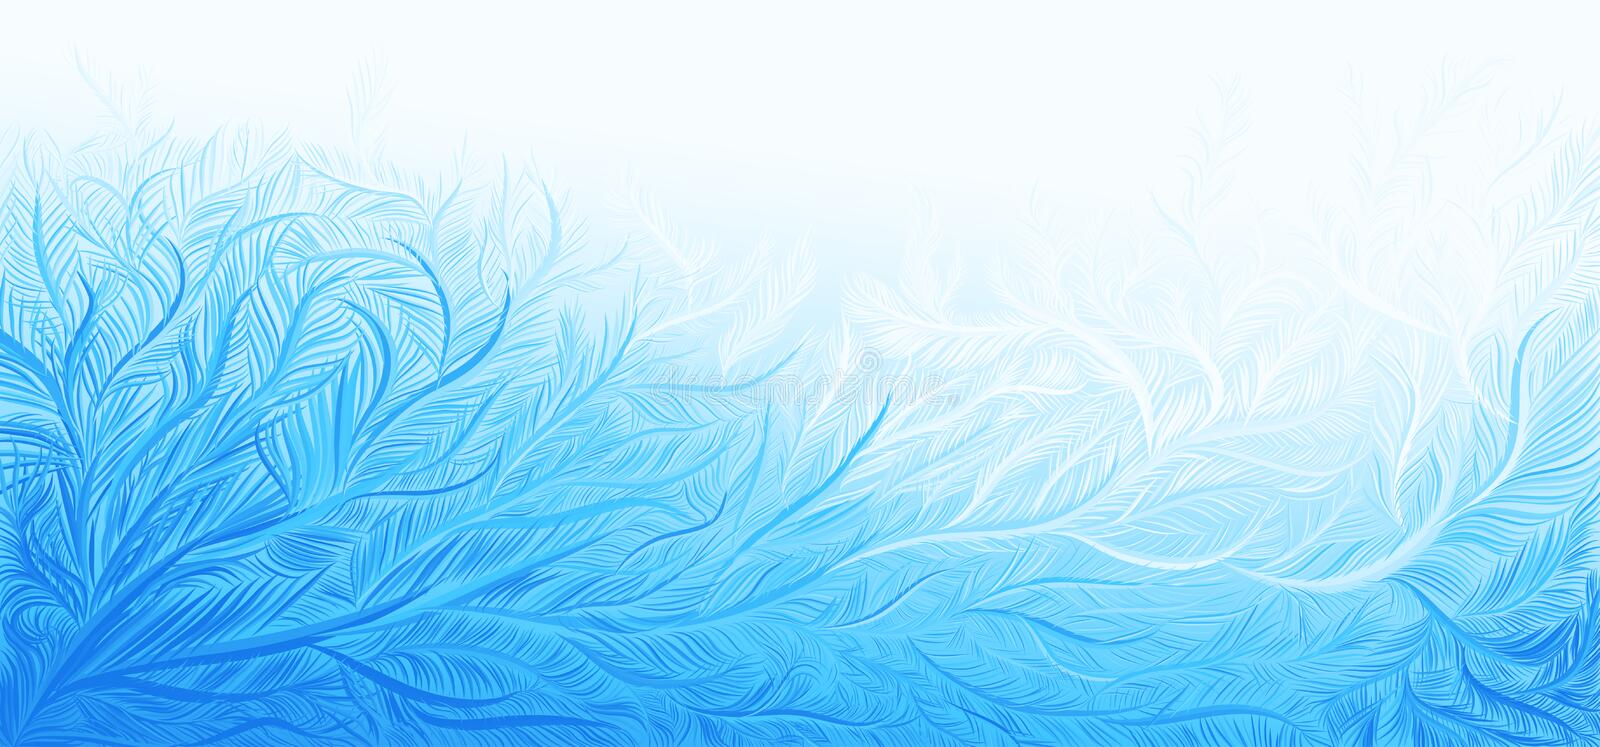 Winter blue curly ice frost christmas background. Vector illustration. RGB. Global colors. One editable gradient used for easy recolor stock illustration